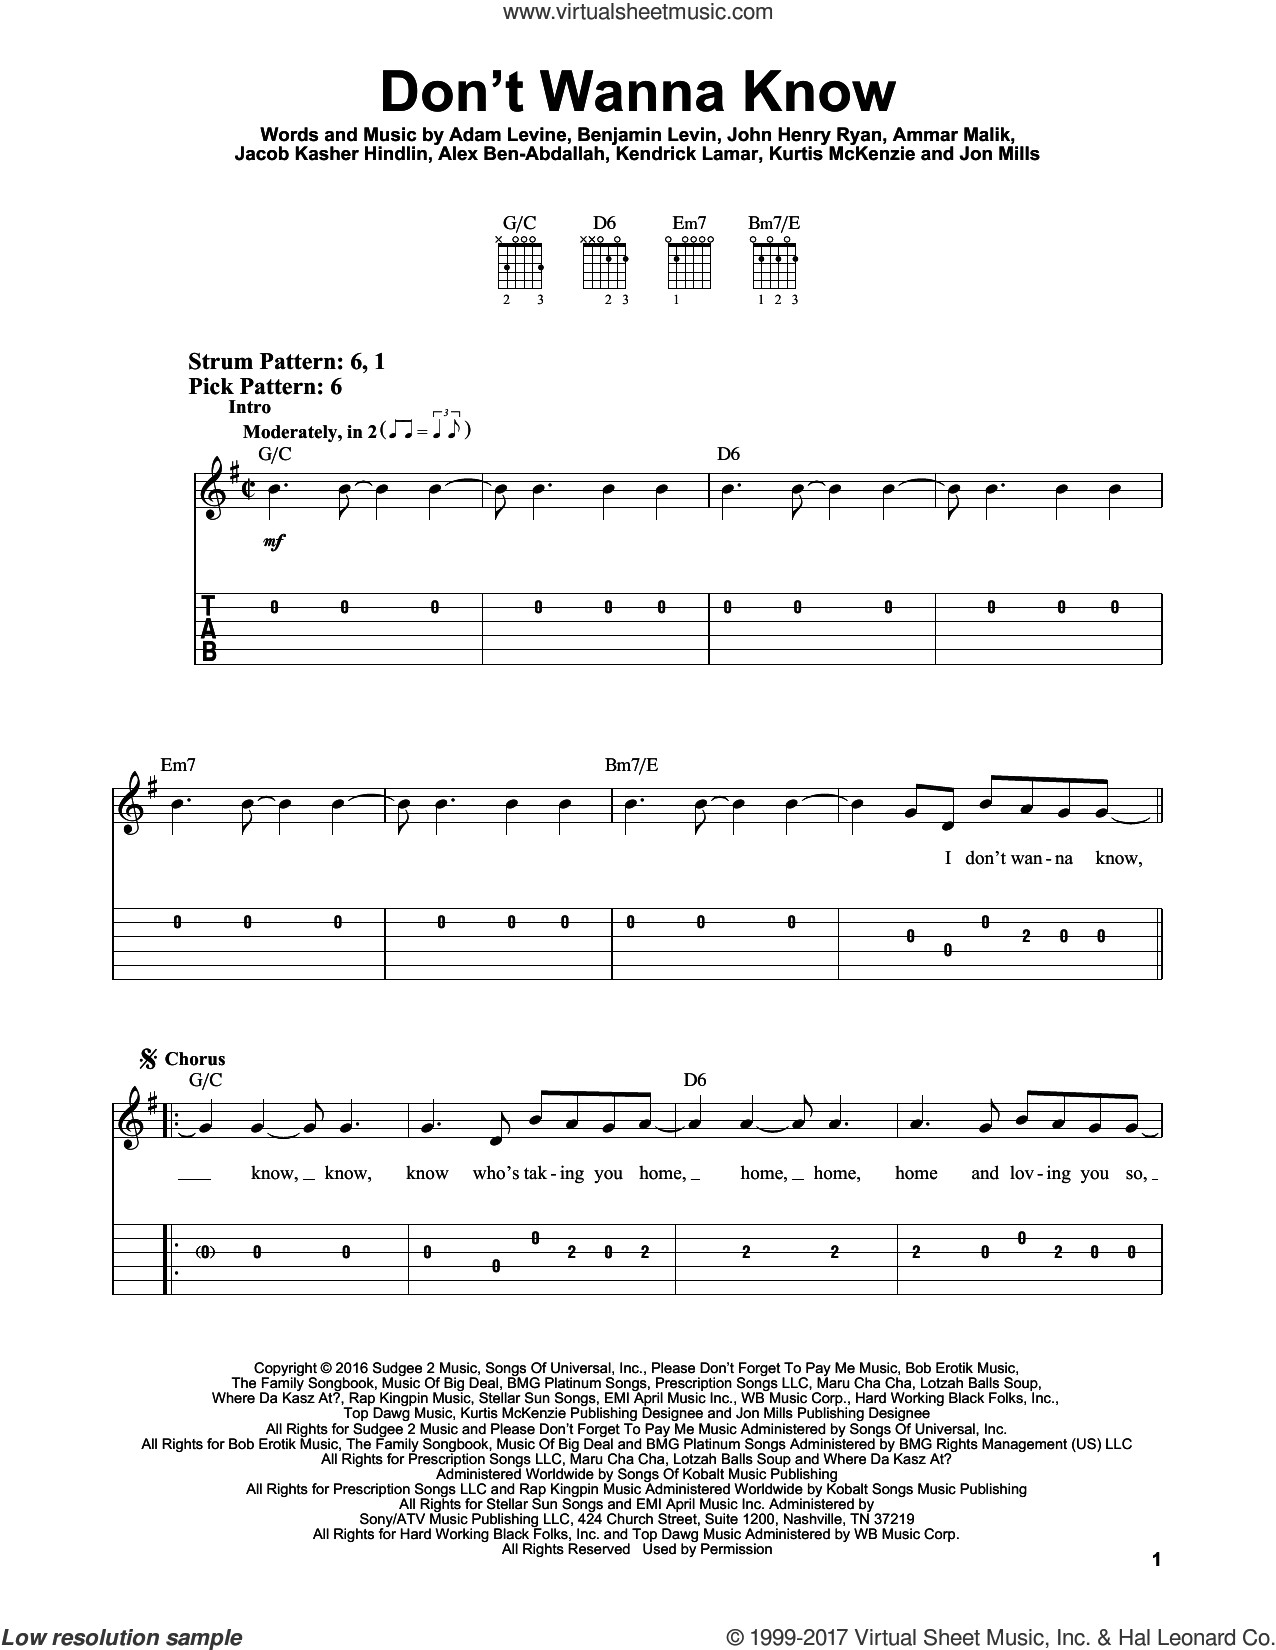 Don't Wanna Know sheet music for guitar solo (easy tablature) by Kurtis McKenzie, Adam Levine, Ammar Malik, Benjamin Levin and Jacob Kasher Hindlin. Score Image Preview.